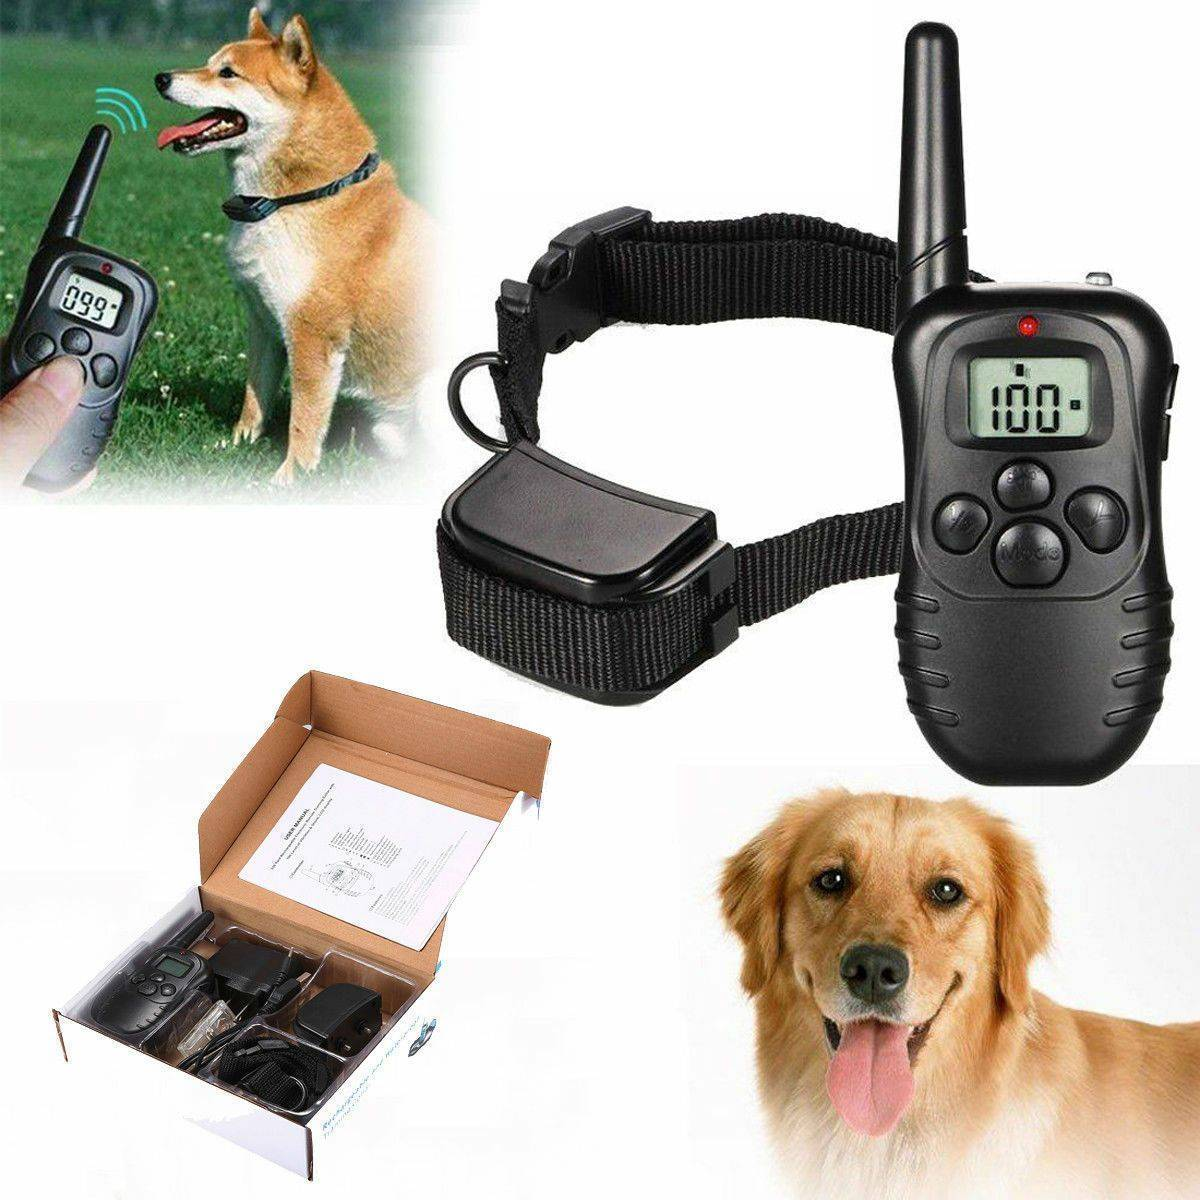 Waterproof Electric Dog Shock Collar With Remote Control